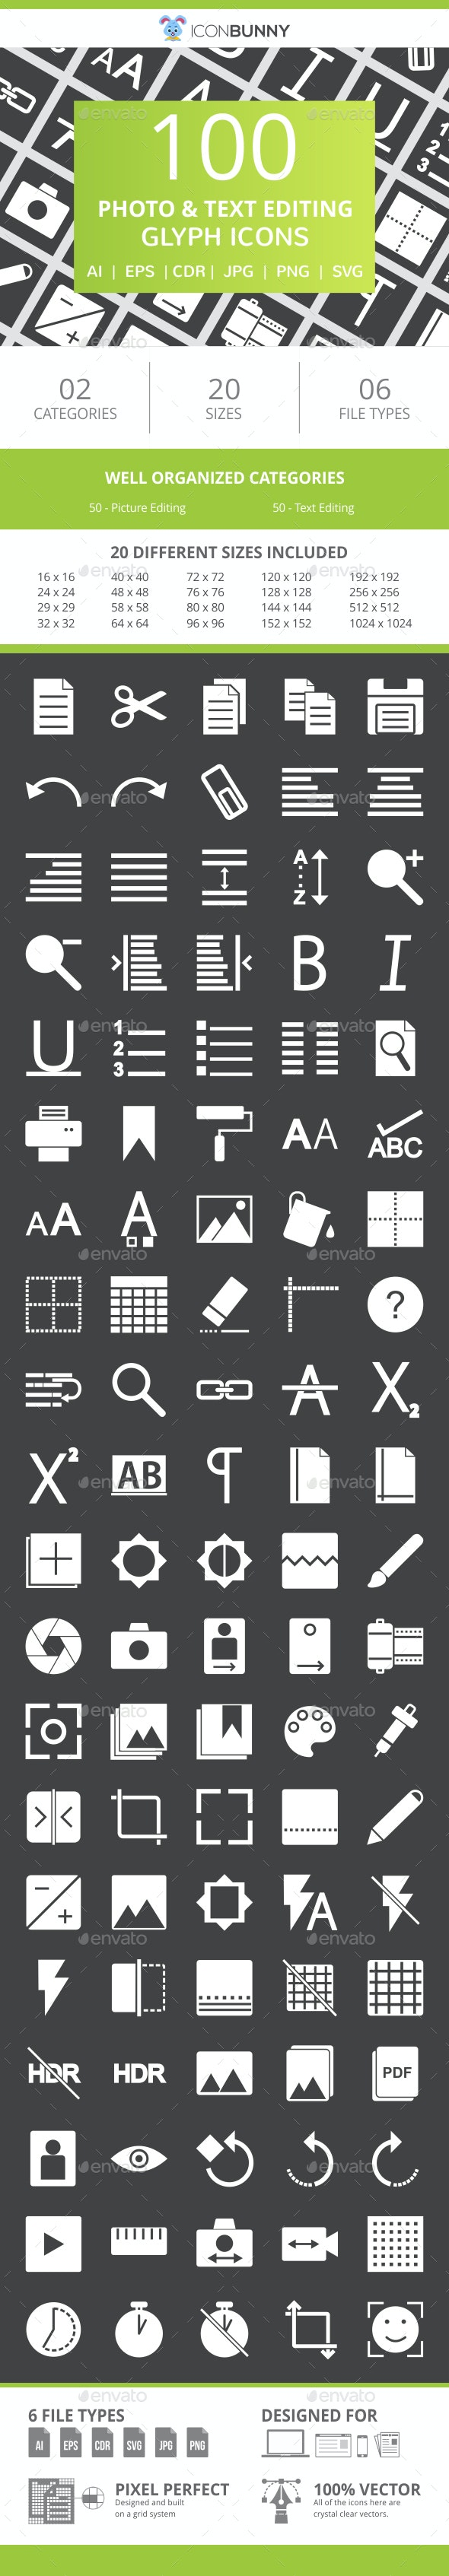 100 Photo & Text Editing Glyph Inverted Icons - Icons